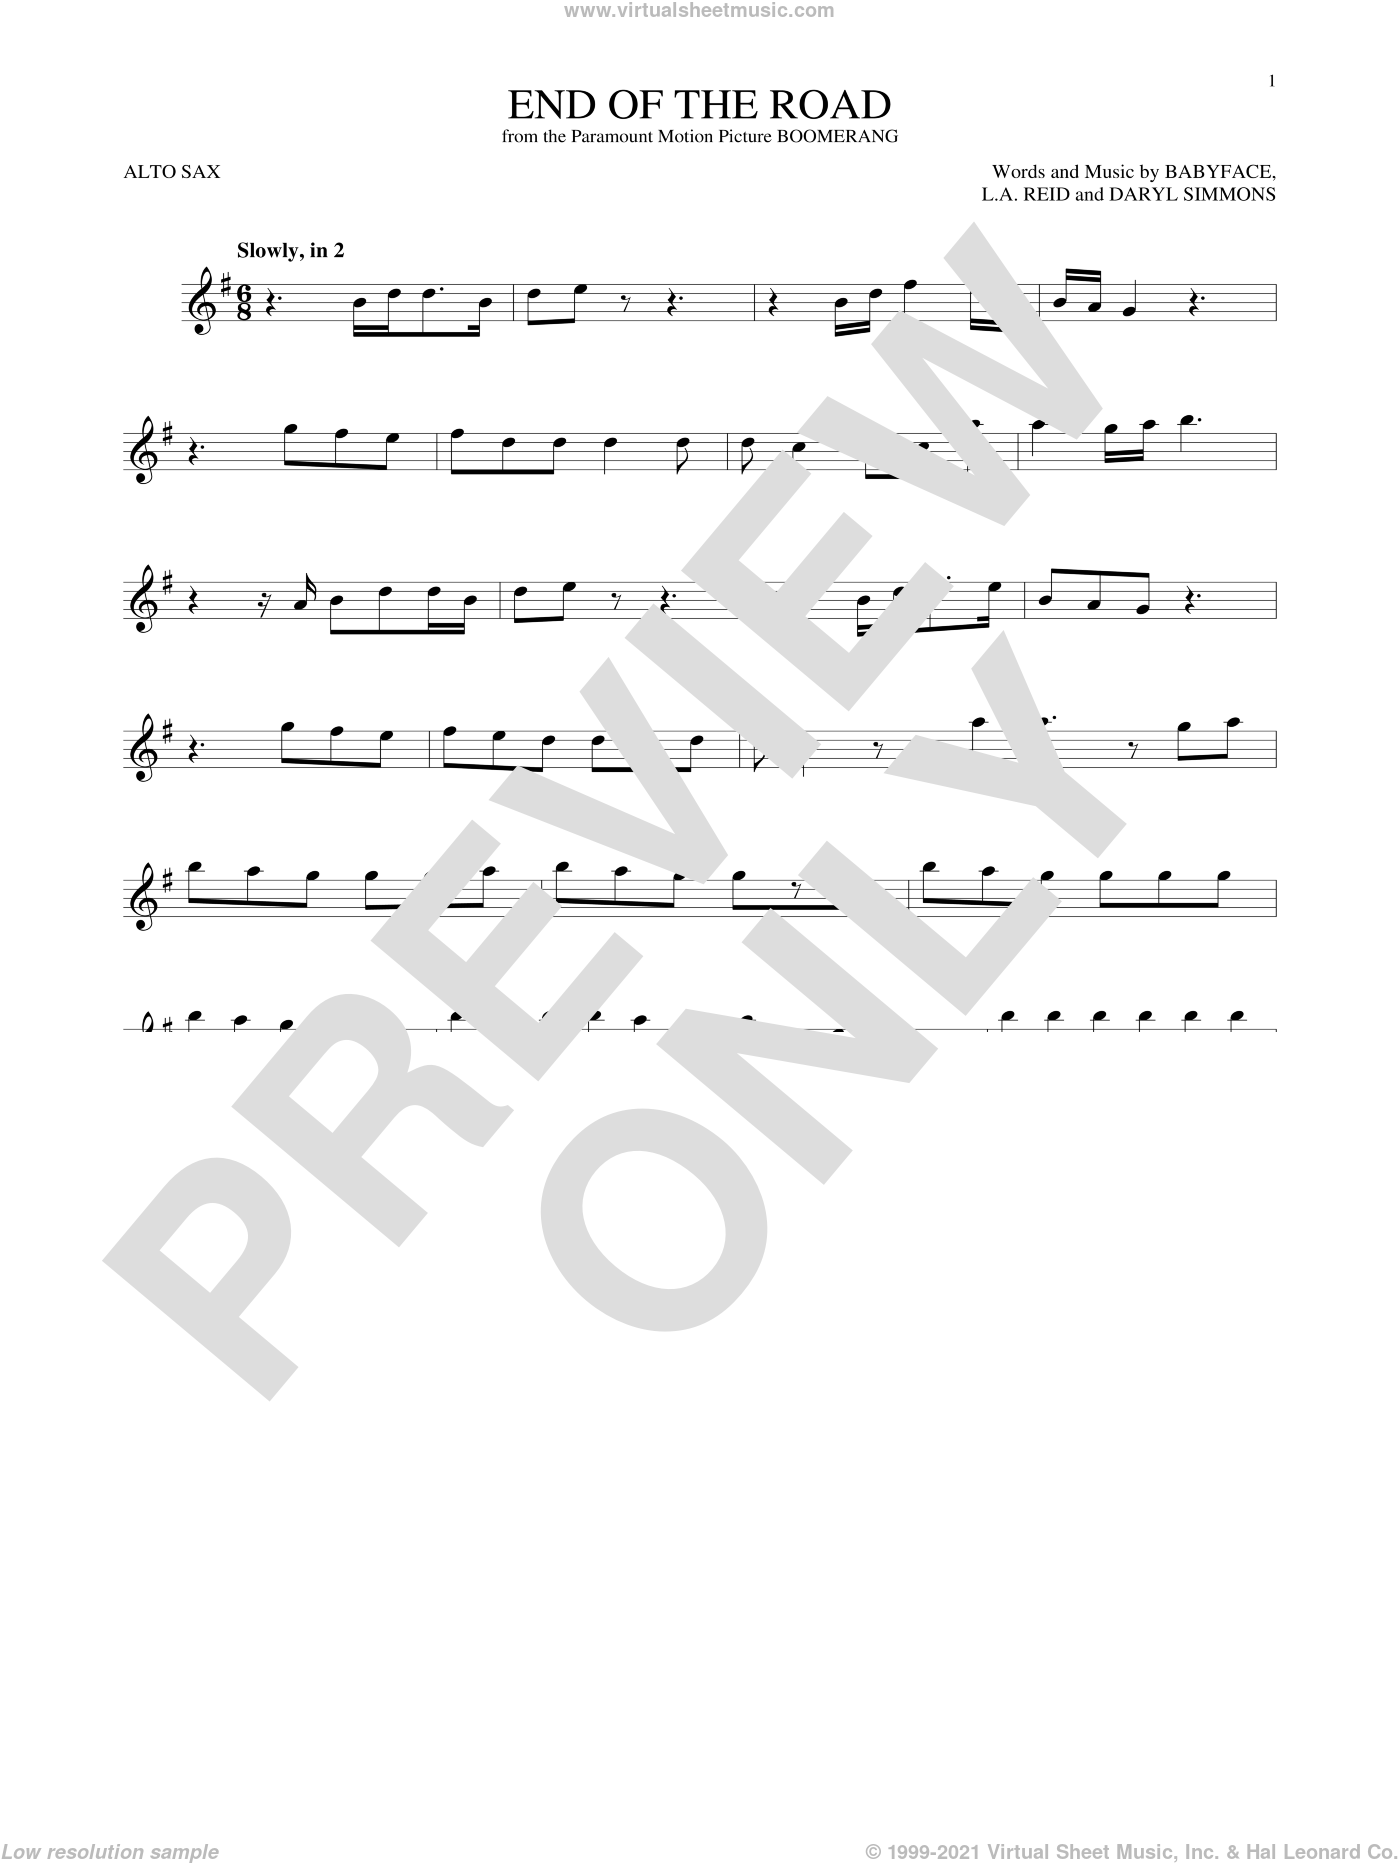 End Of The Road sheet music for alto saxophone solo by Boyz II Men, Babyface, Daryl Simmons and L.A. Reid, intermediate skill level